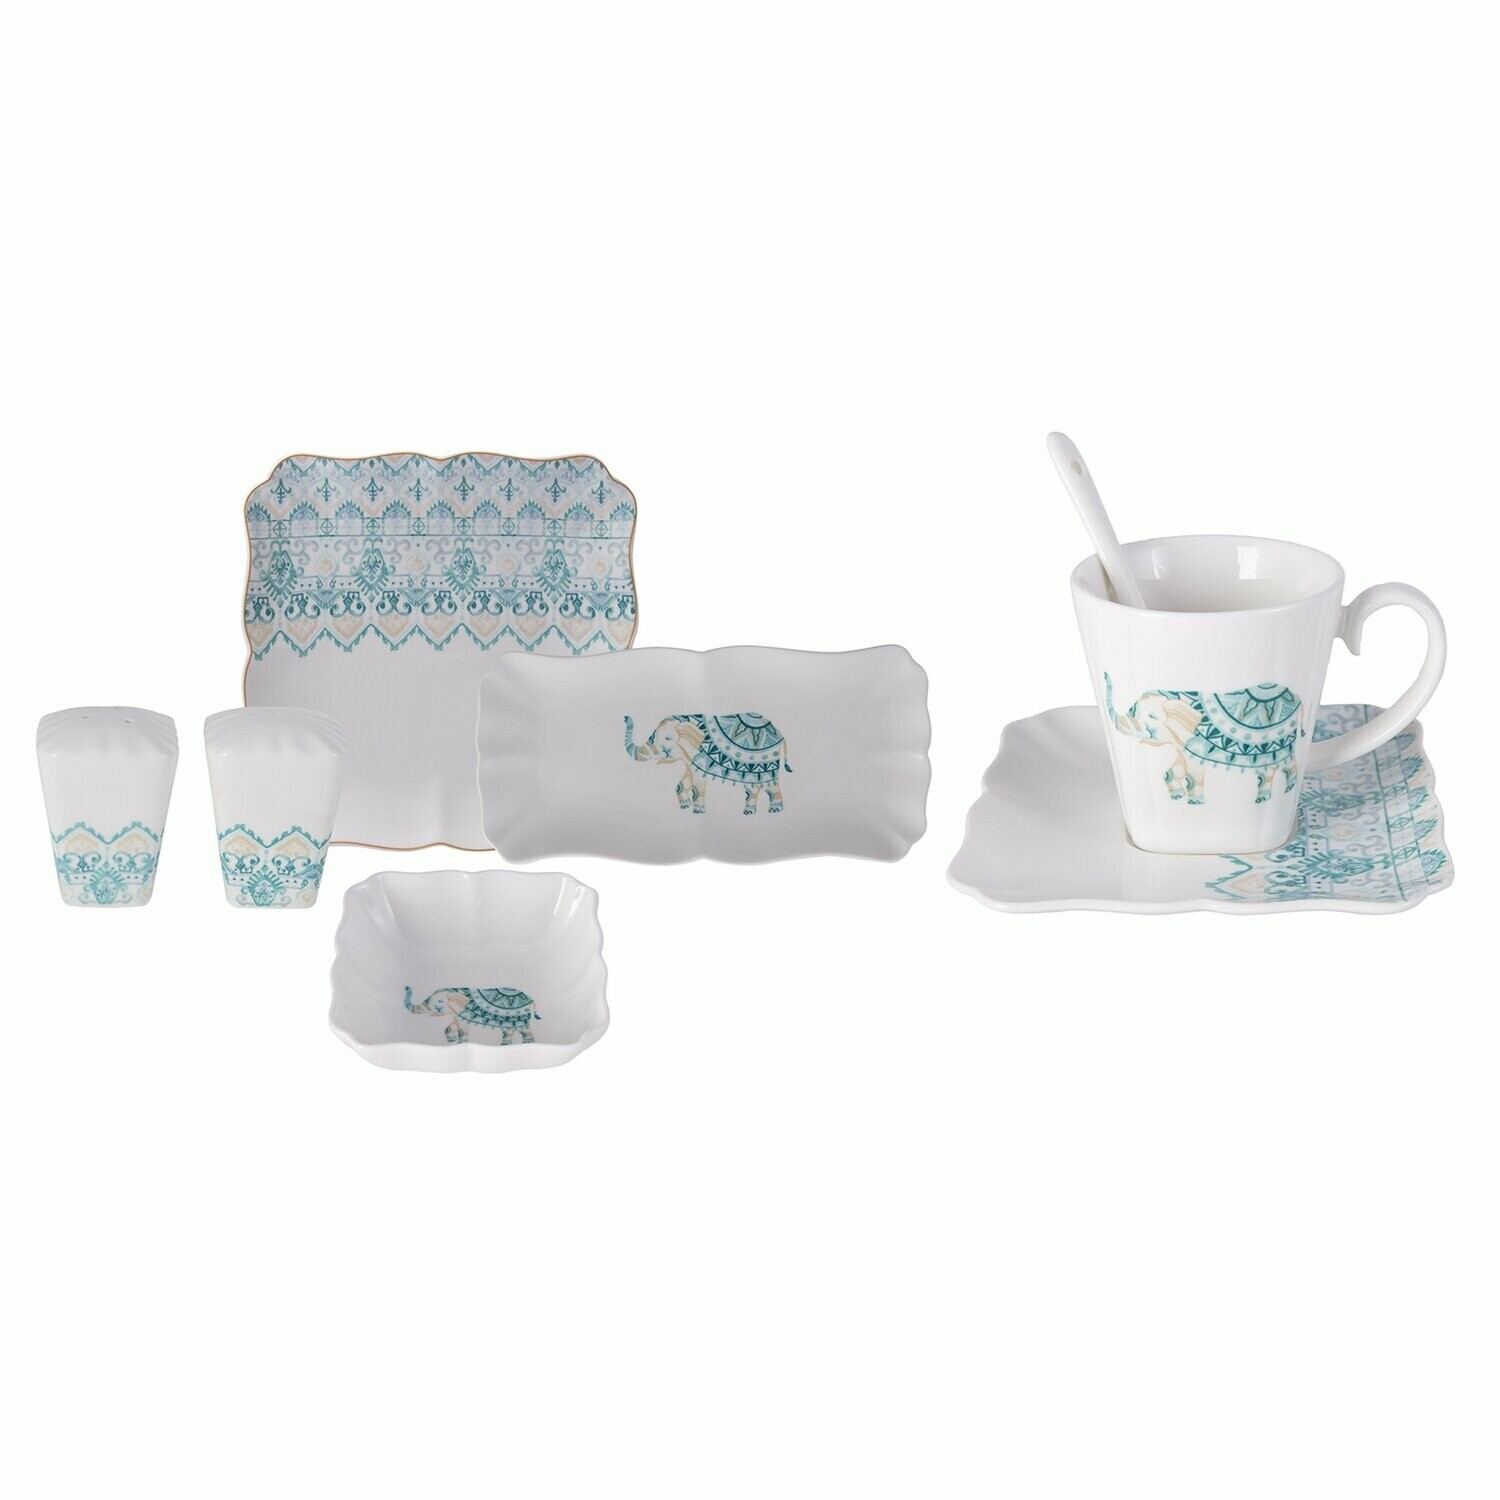 KARACA MARODISA BLUE 32 Pieces KAHVALTI SET KARE - Breakfast Set Square